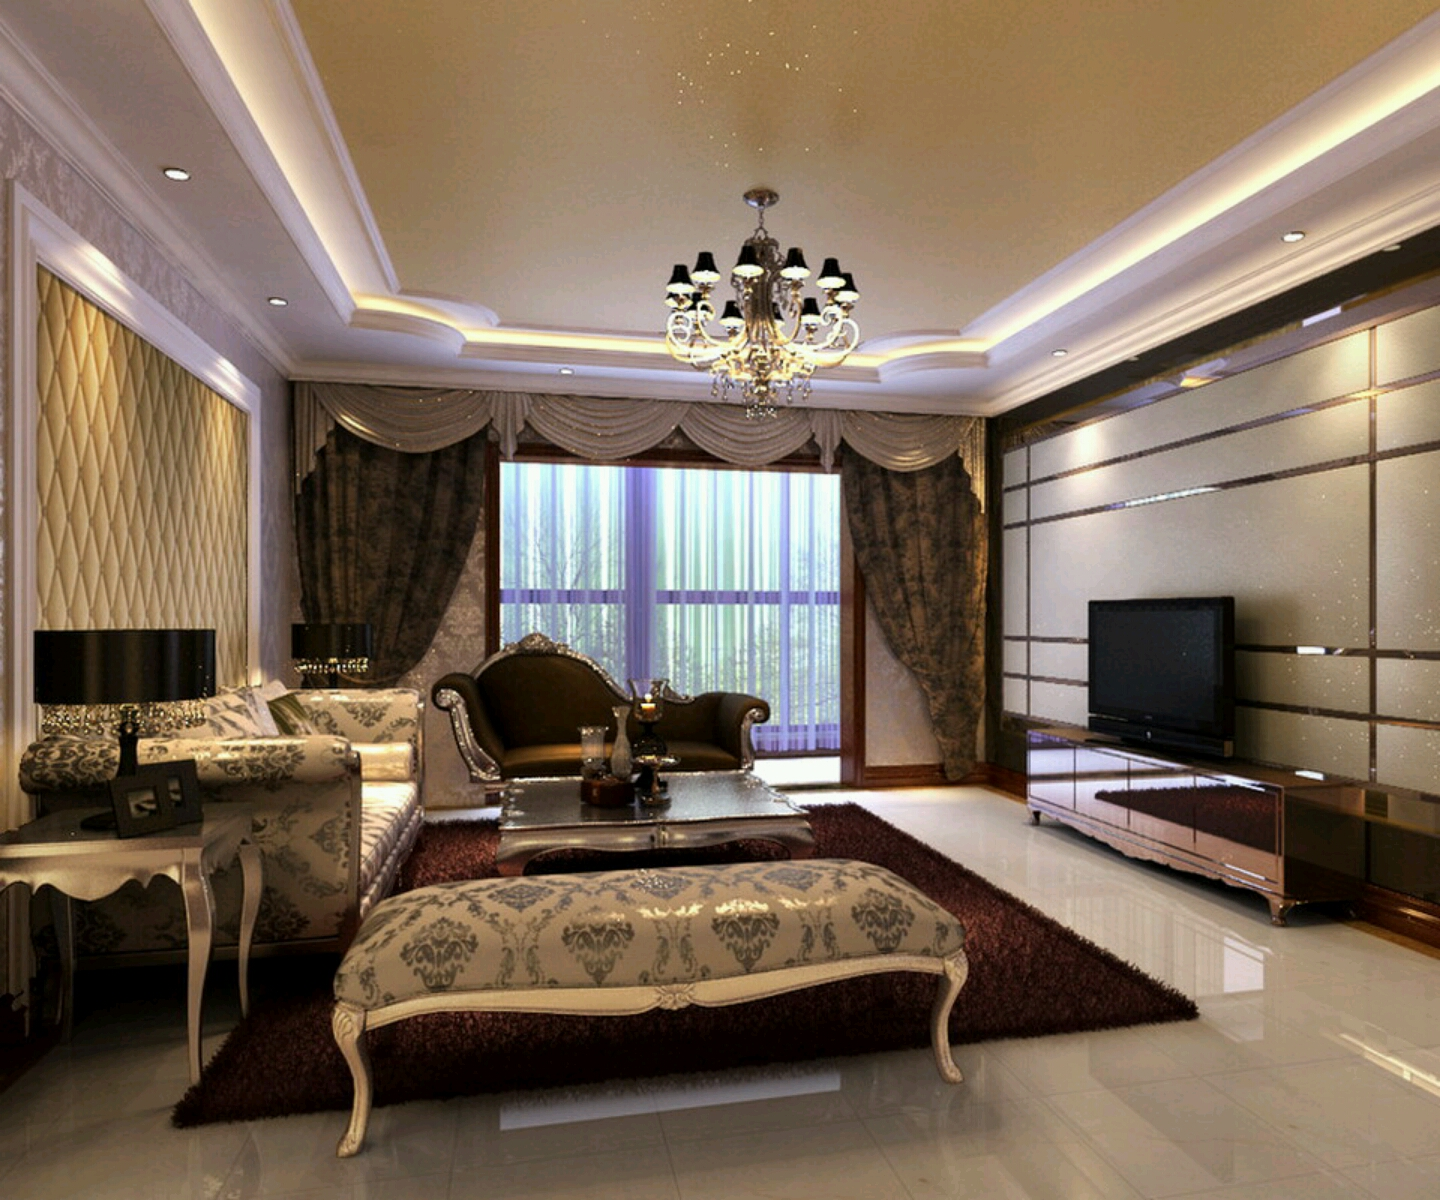 Interior Decorating Ideas Living Rooms Dream House: interior decoration for living room